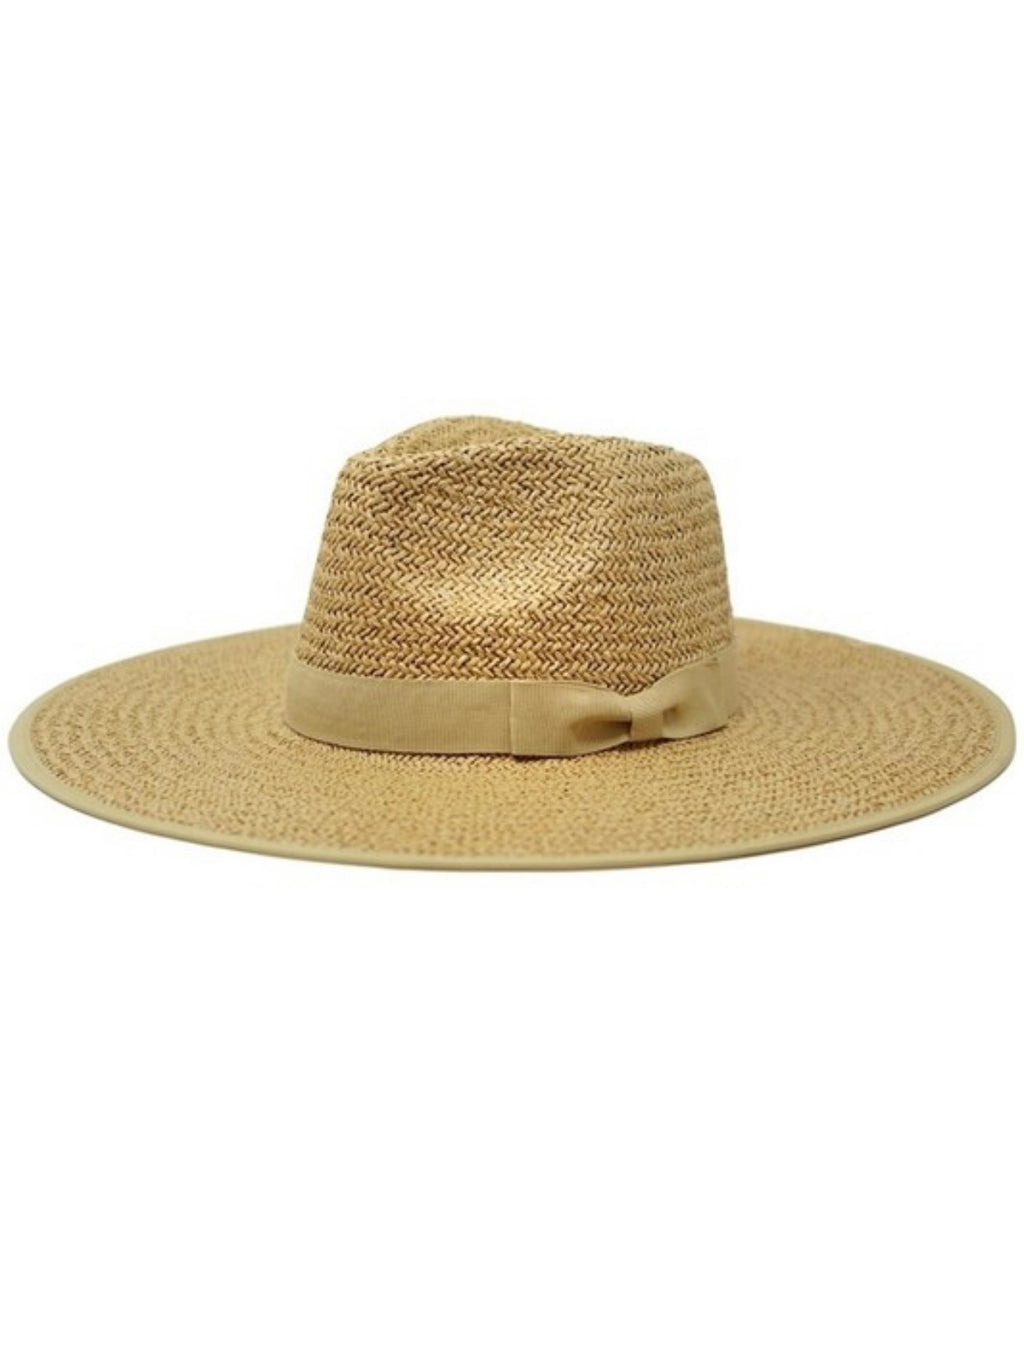 Emma Straw Hat - Toffee